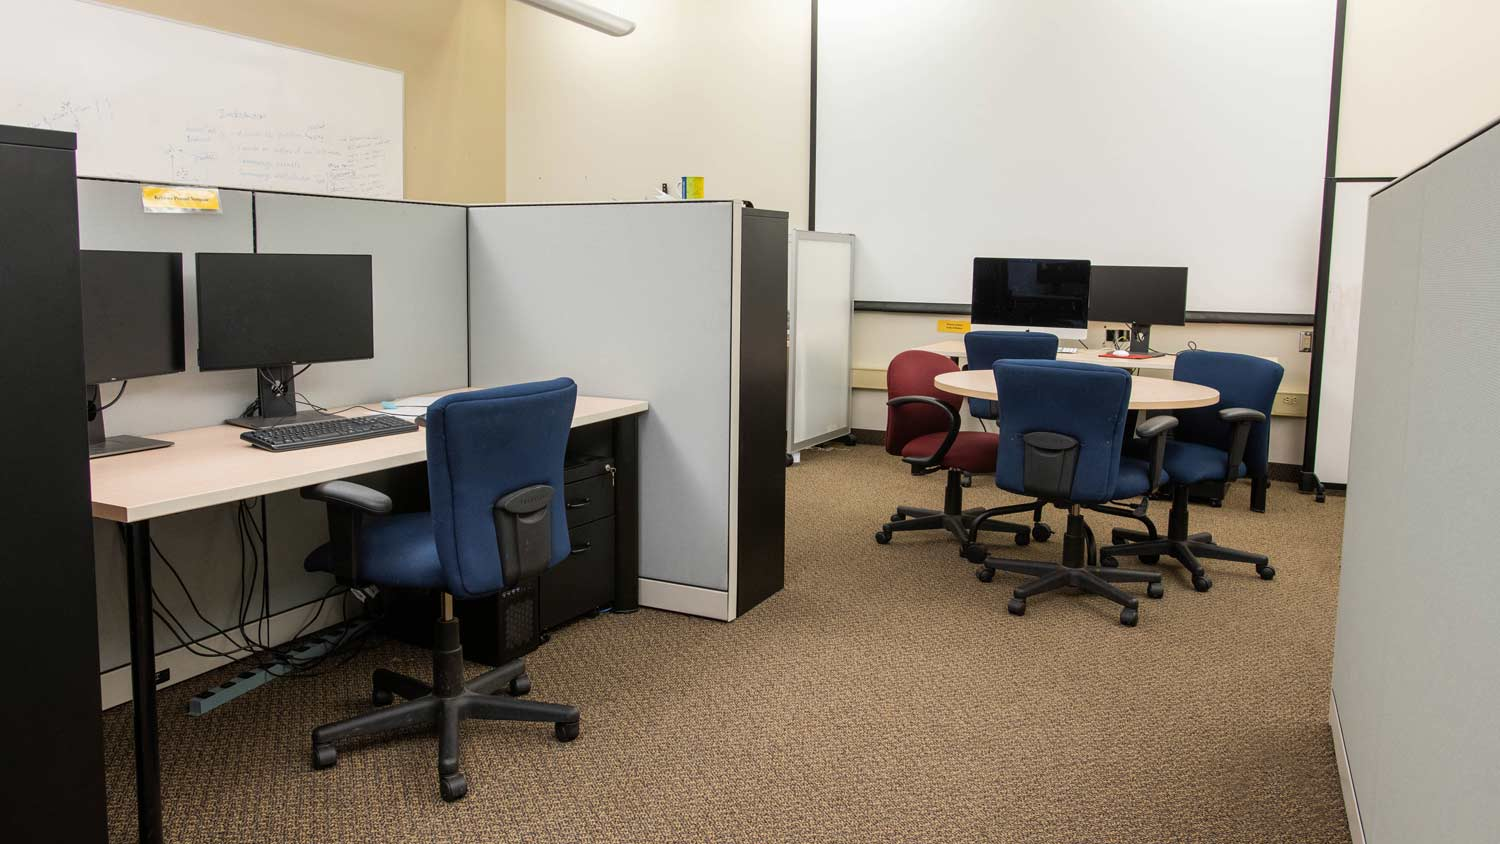 Cubicles with computer workstations and a small round table